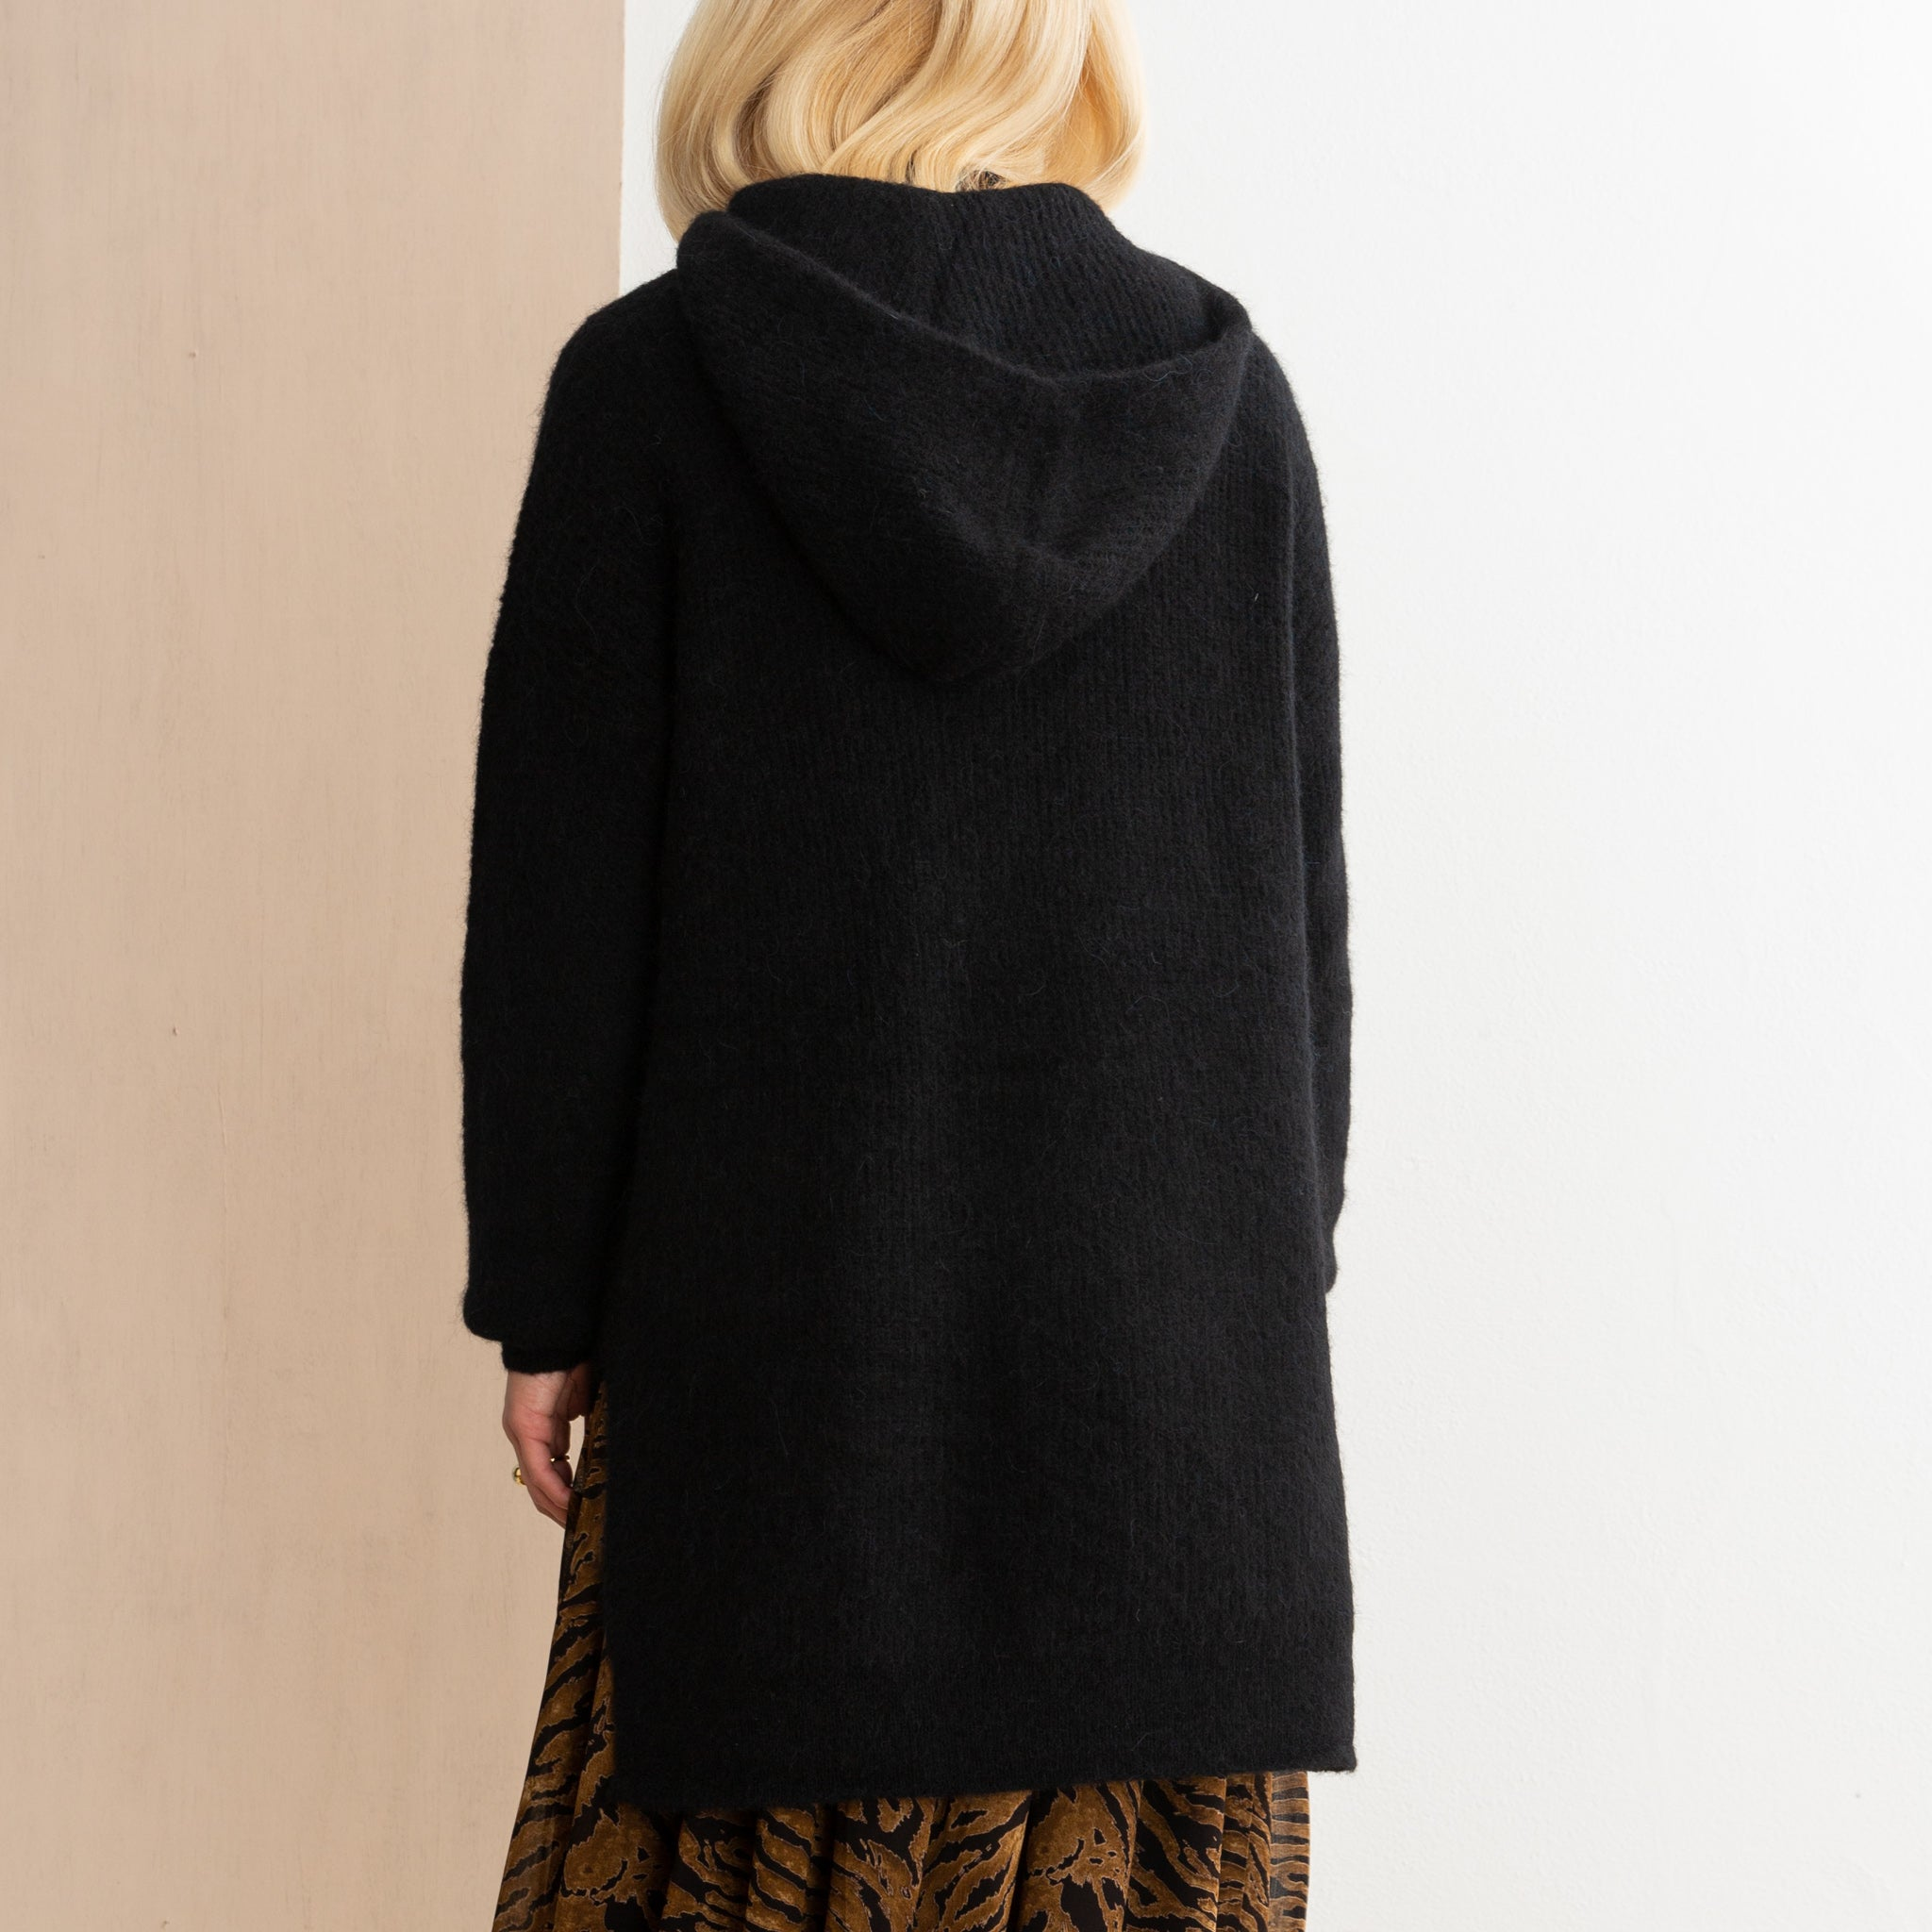 Ganni Soft Knit Wool Hoodie in Black